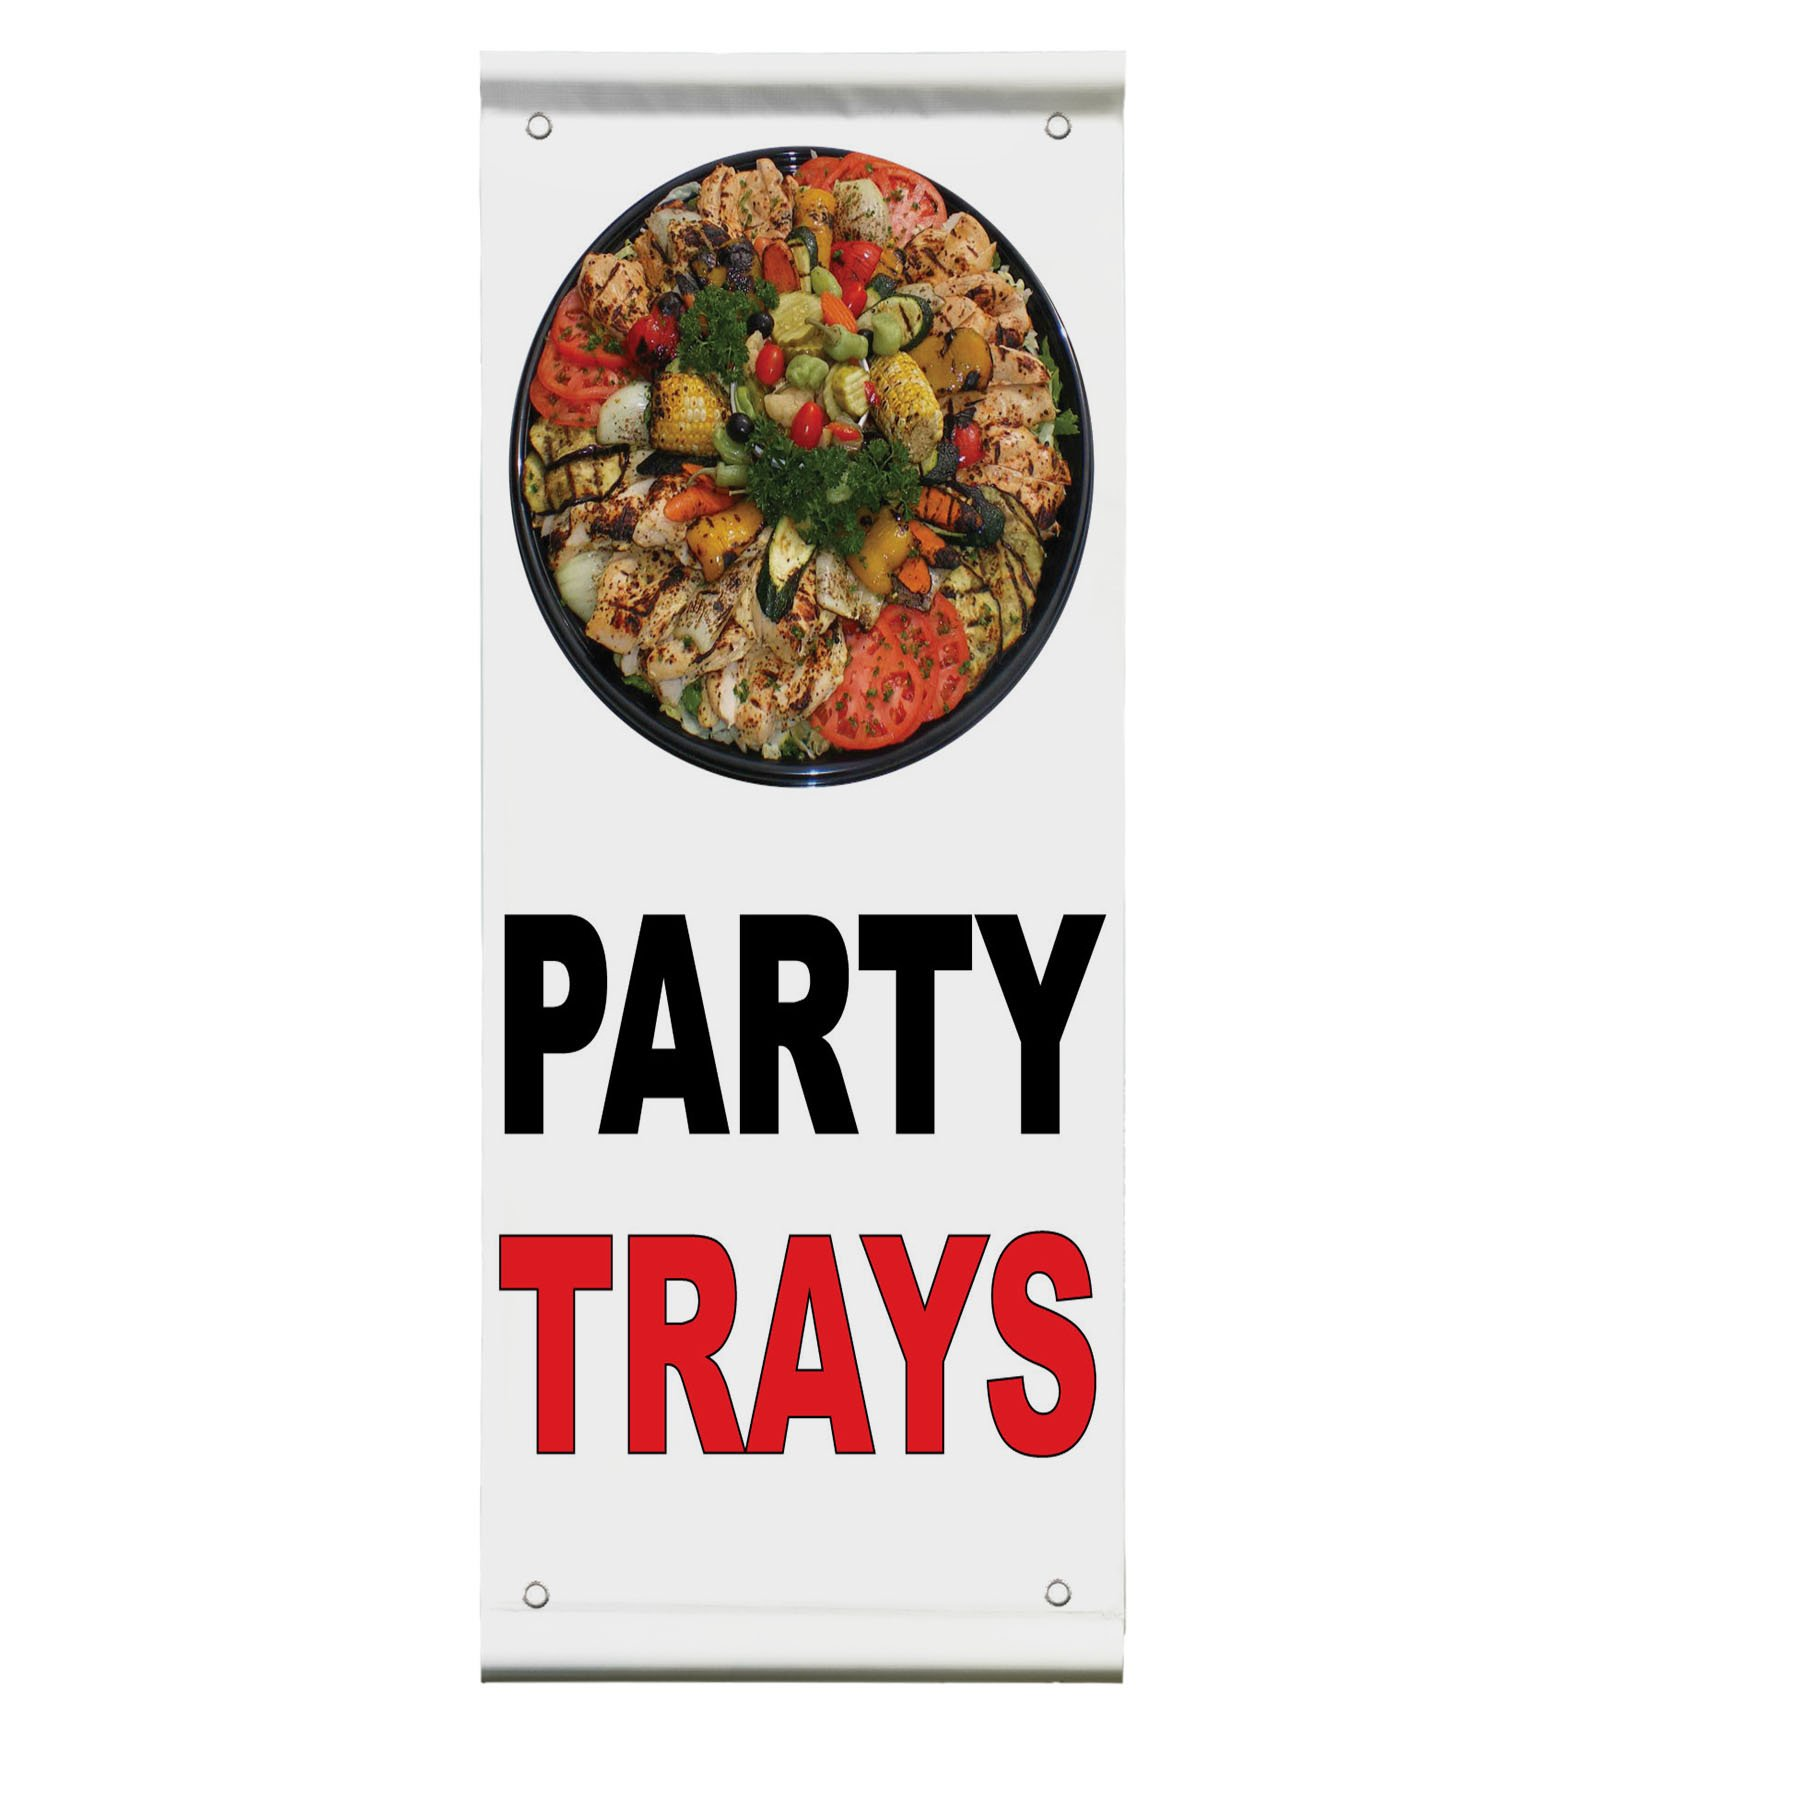 Party Trays Black Red Bar Restaurant Double Sided Pole Banner Sign 36 in x 48 in w/ Wall Bracket by Fastasticdeals